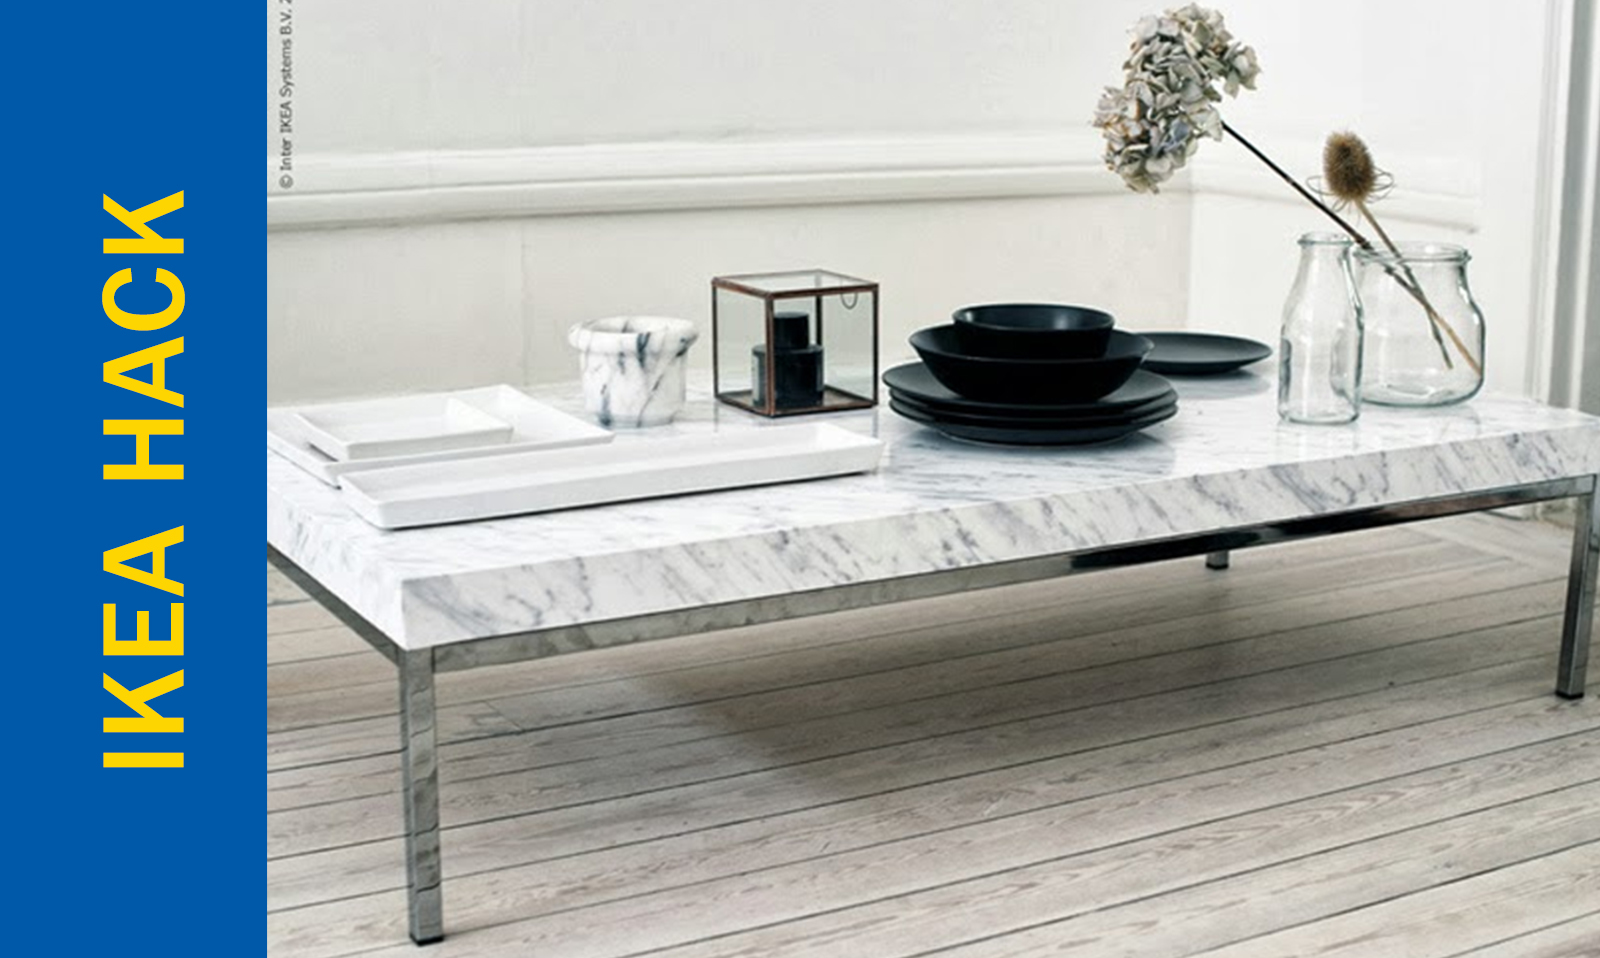 Awesome Ikea Hack Of The Week Marbled Textured Side Table Or